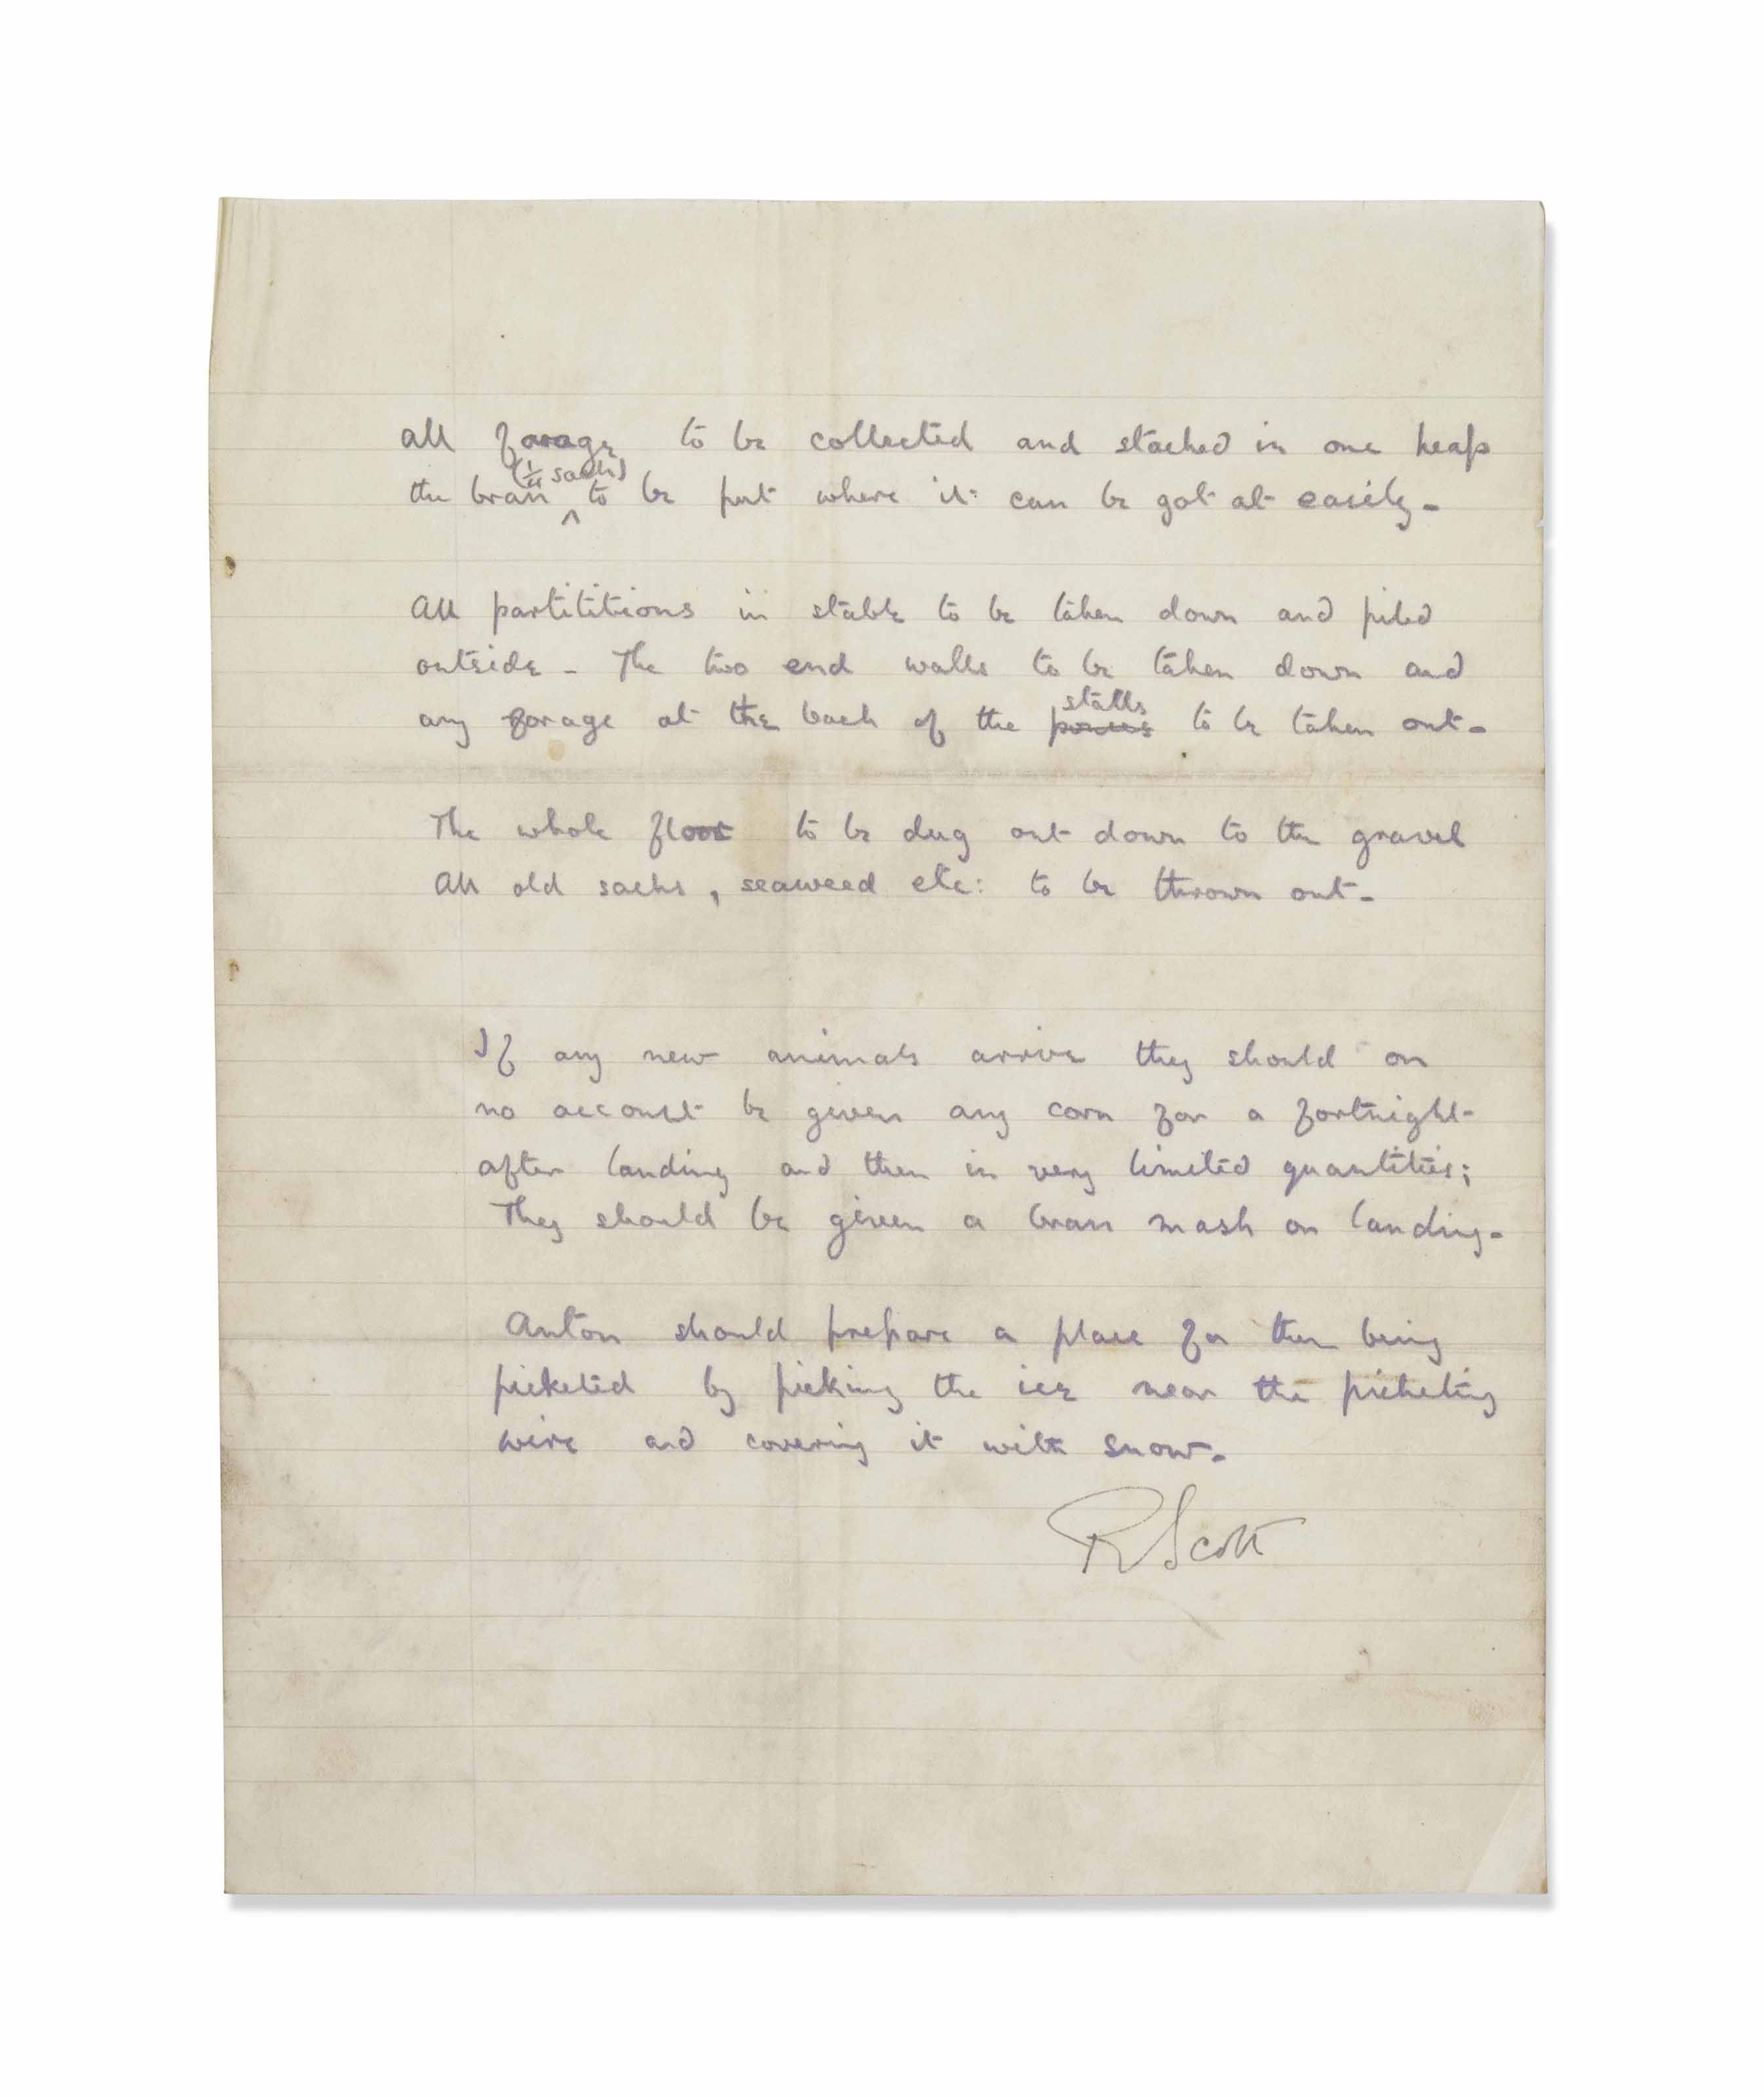 BRITISH ANTARCTIC EXPEDITION (1910-1913) - ROBERT FALCON SCOTT (1868-1912) DOCUMENT SIGNED BY R. SCOTT, THE TEXT IN THE HAND OF L.E.G. OATES